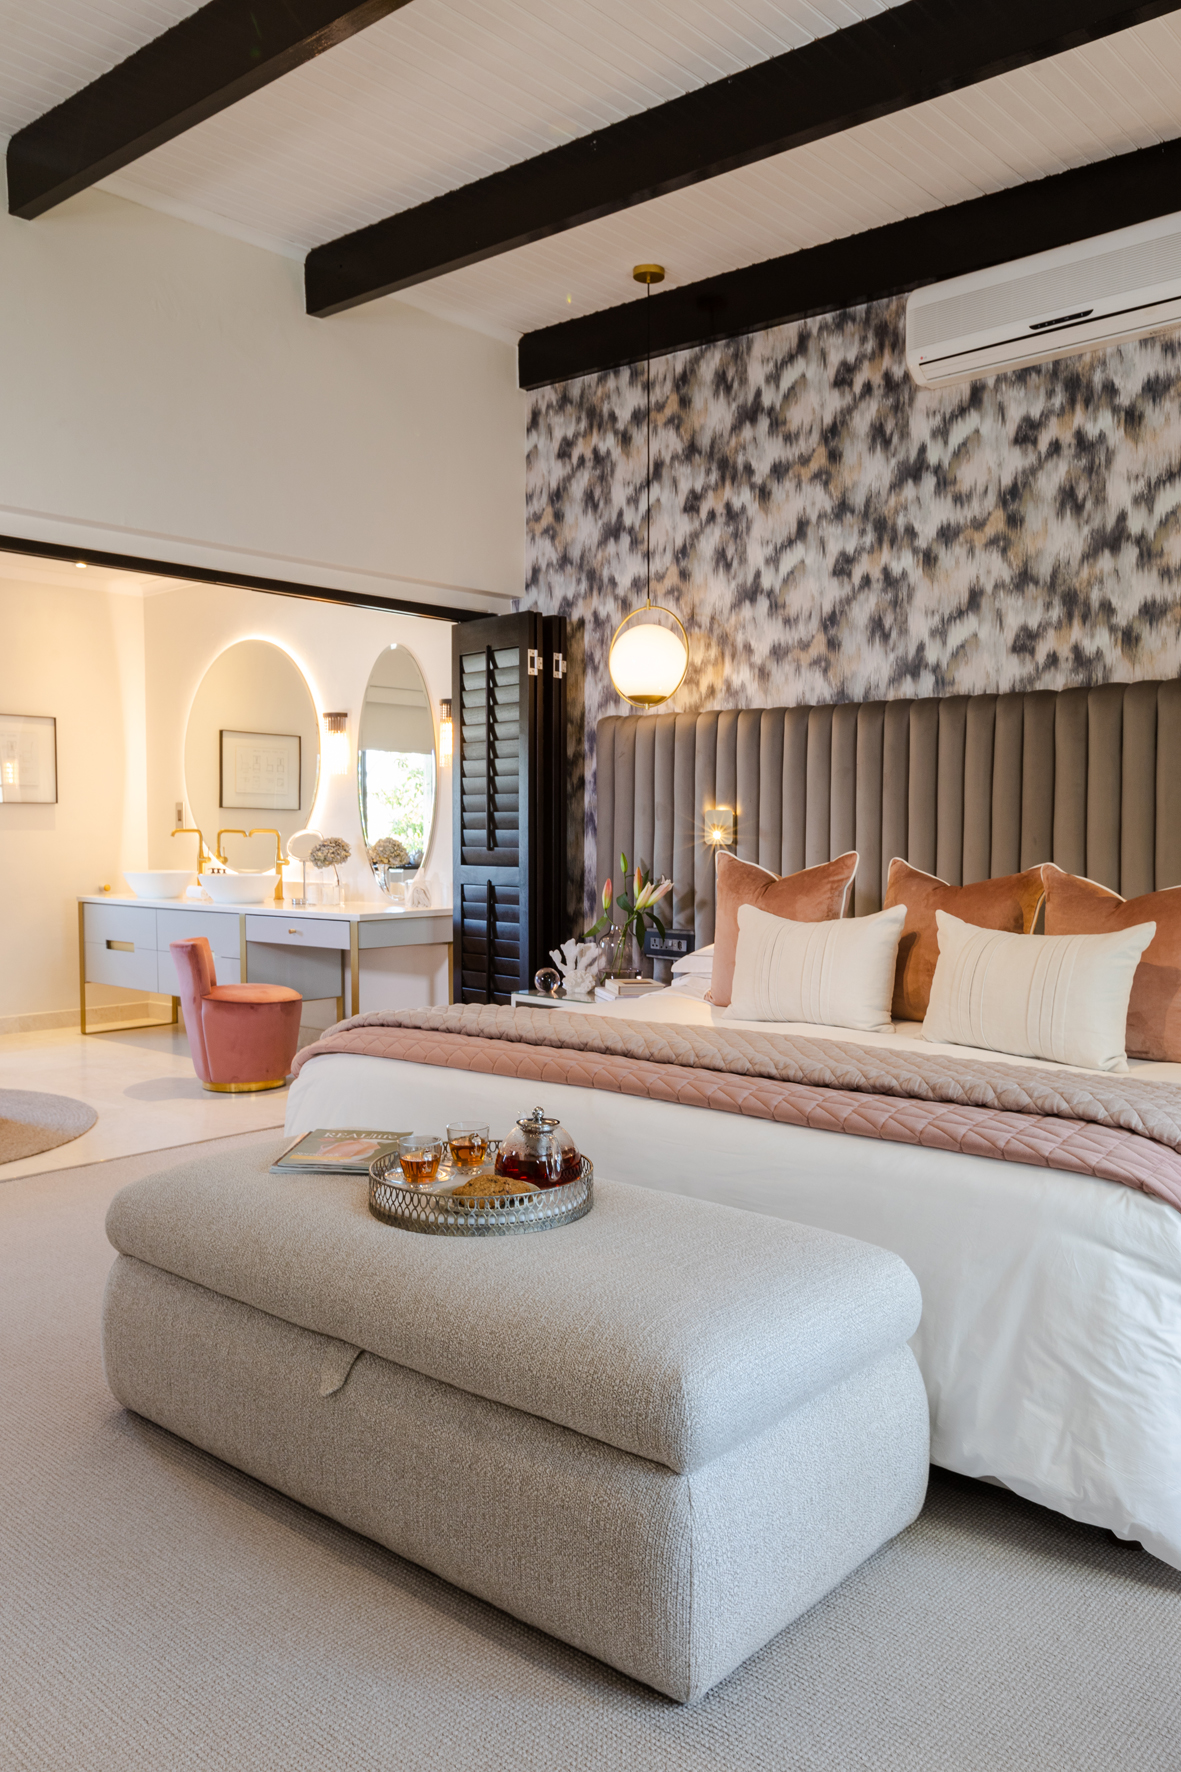 Luxury accommodation, Steenberg Easter Family Staycation Sonia Cabano blog eatdrinkcapetown food wine travel